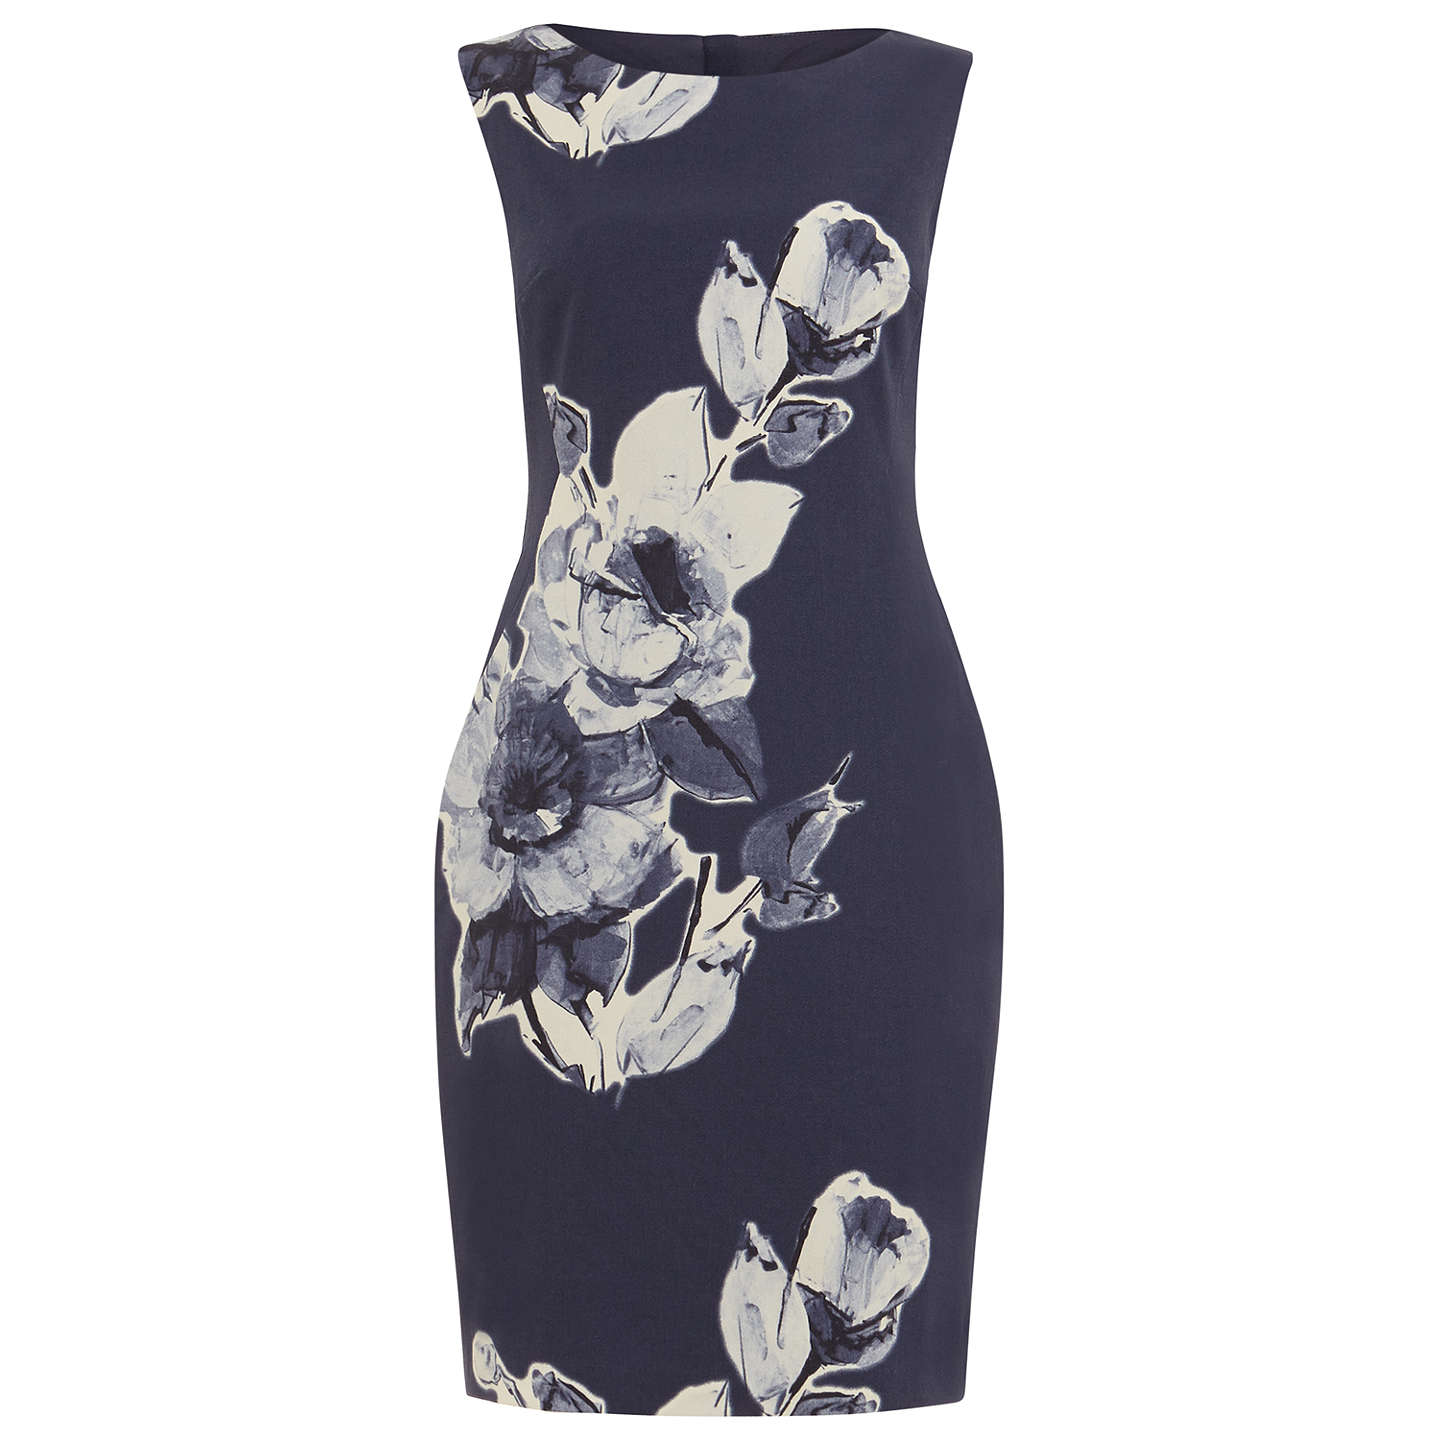 BuyPhase Eight Kember Floral Dress, Blue/Multi, 8 Online at johnlewis.com